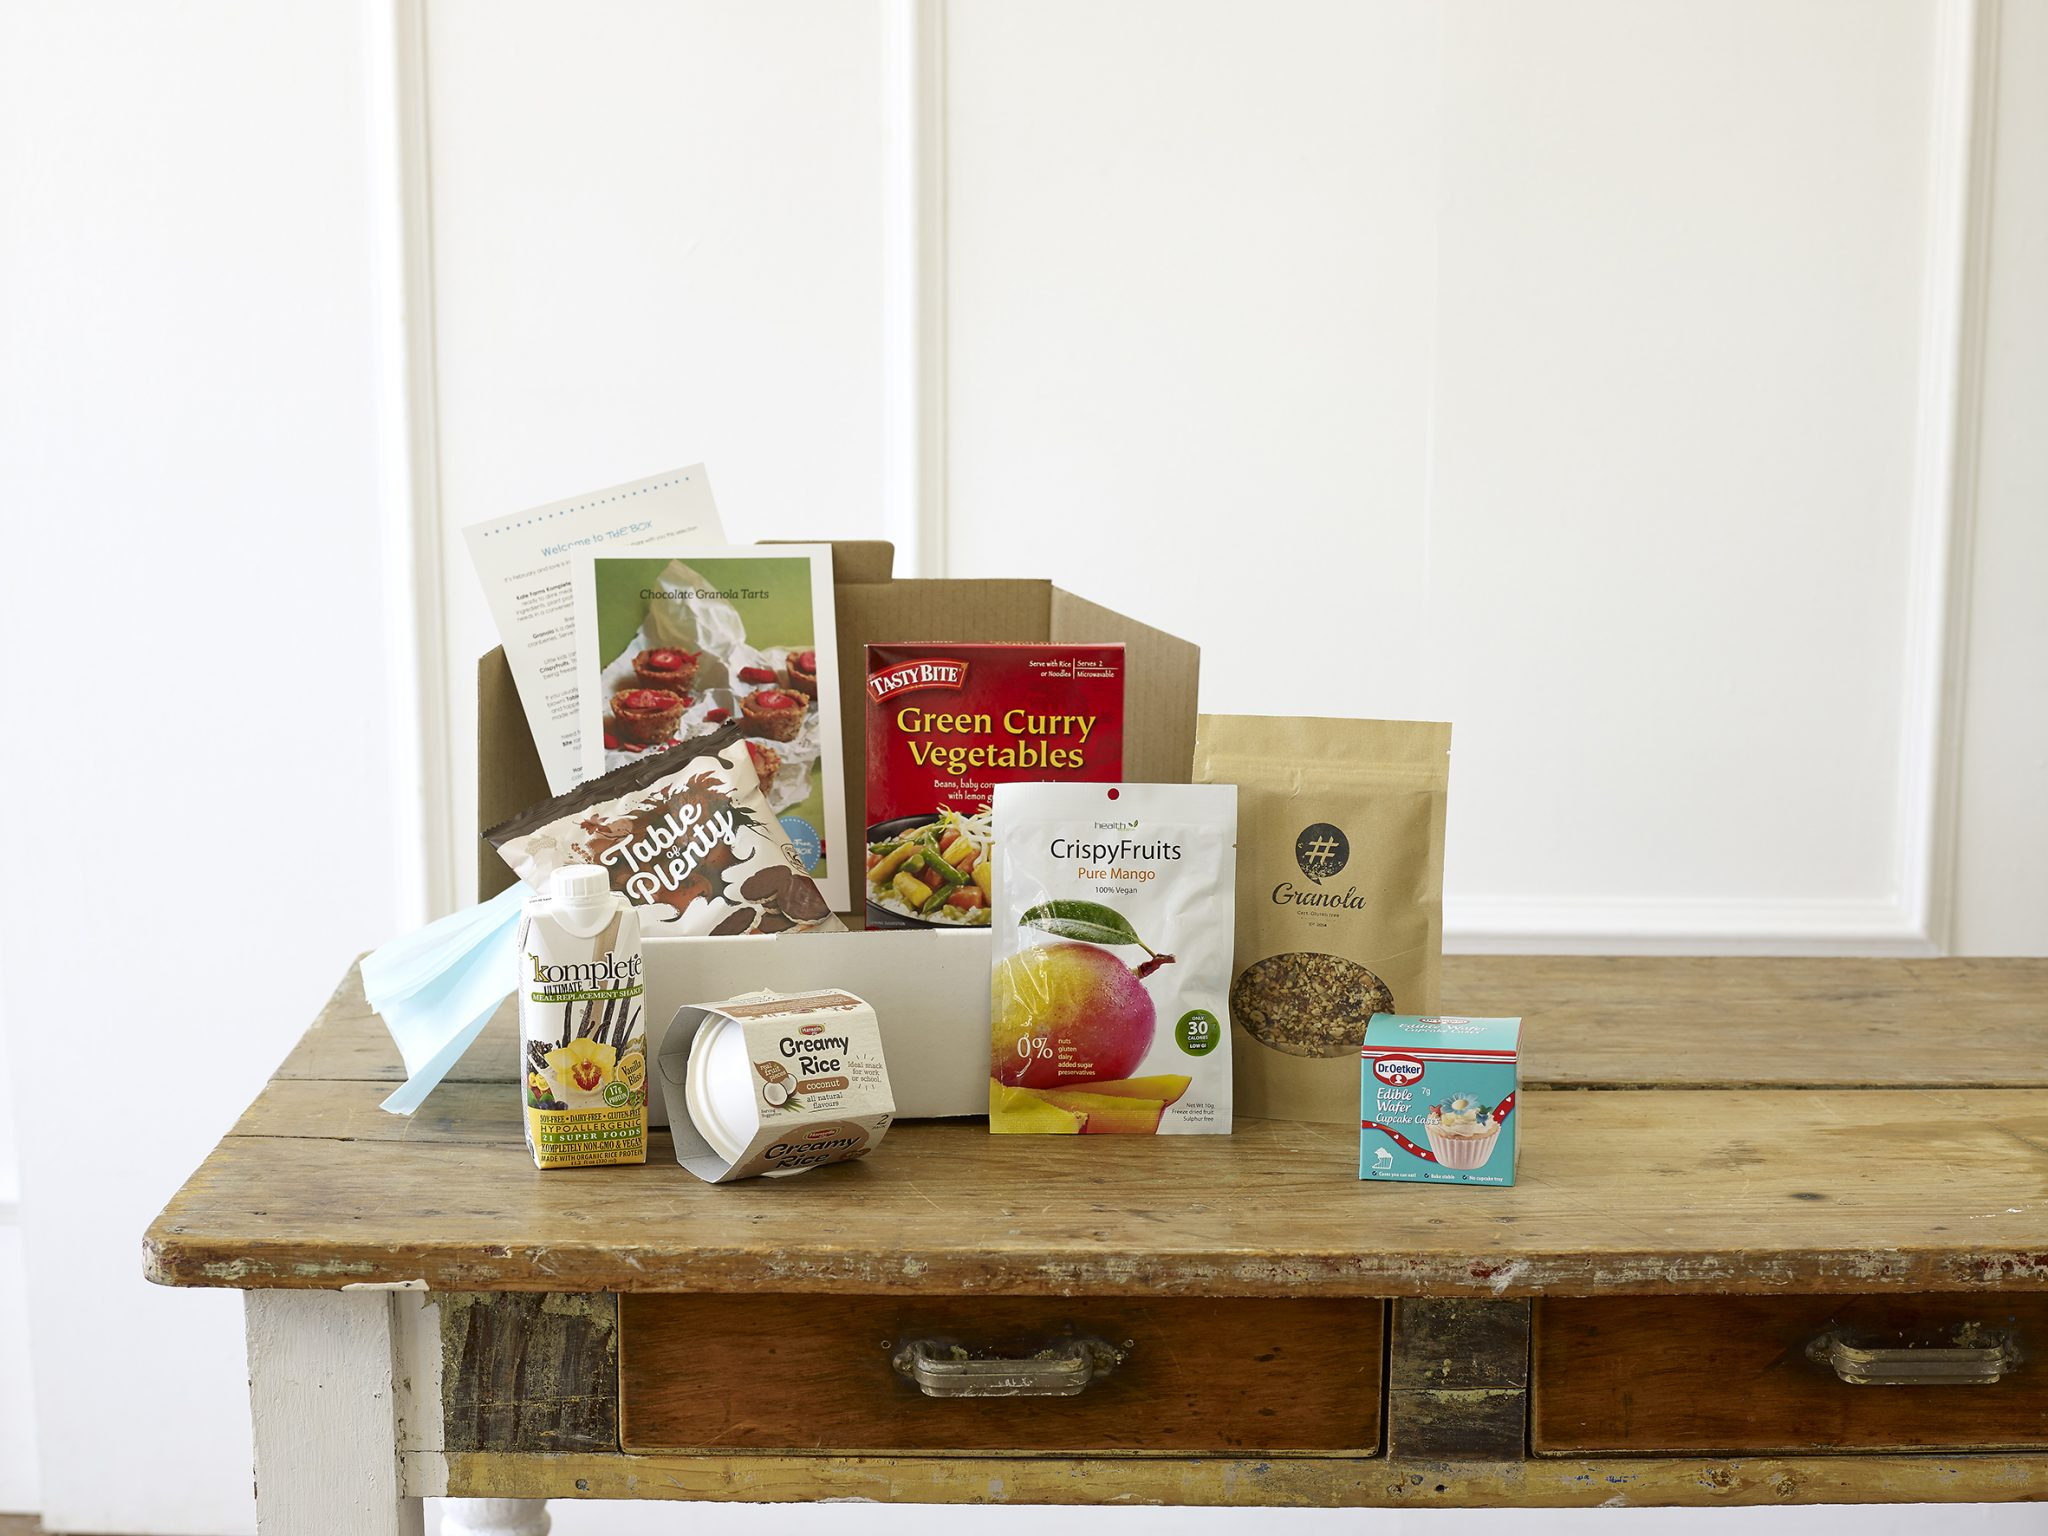 A selection of gluten-free product samples including protein drink, rice crackers, rice pudding, vegetable green curry and gluten-free granola.